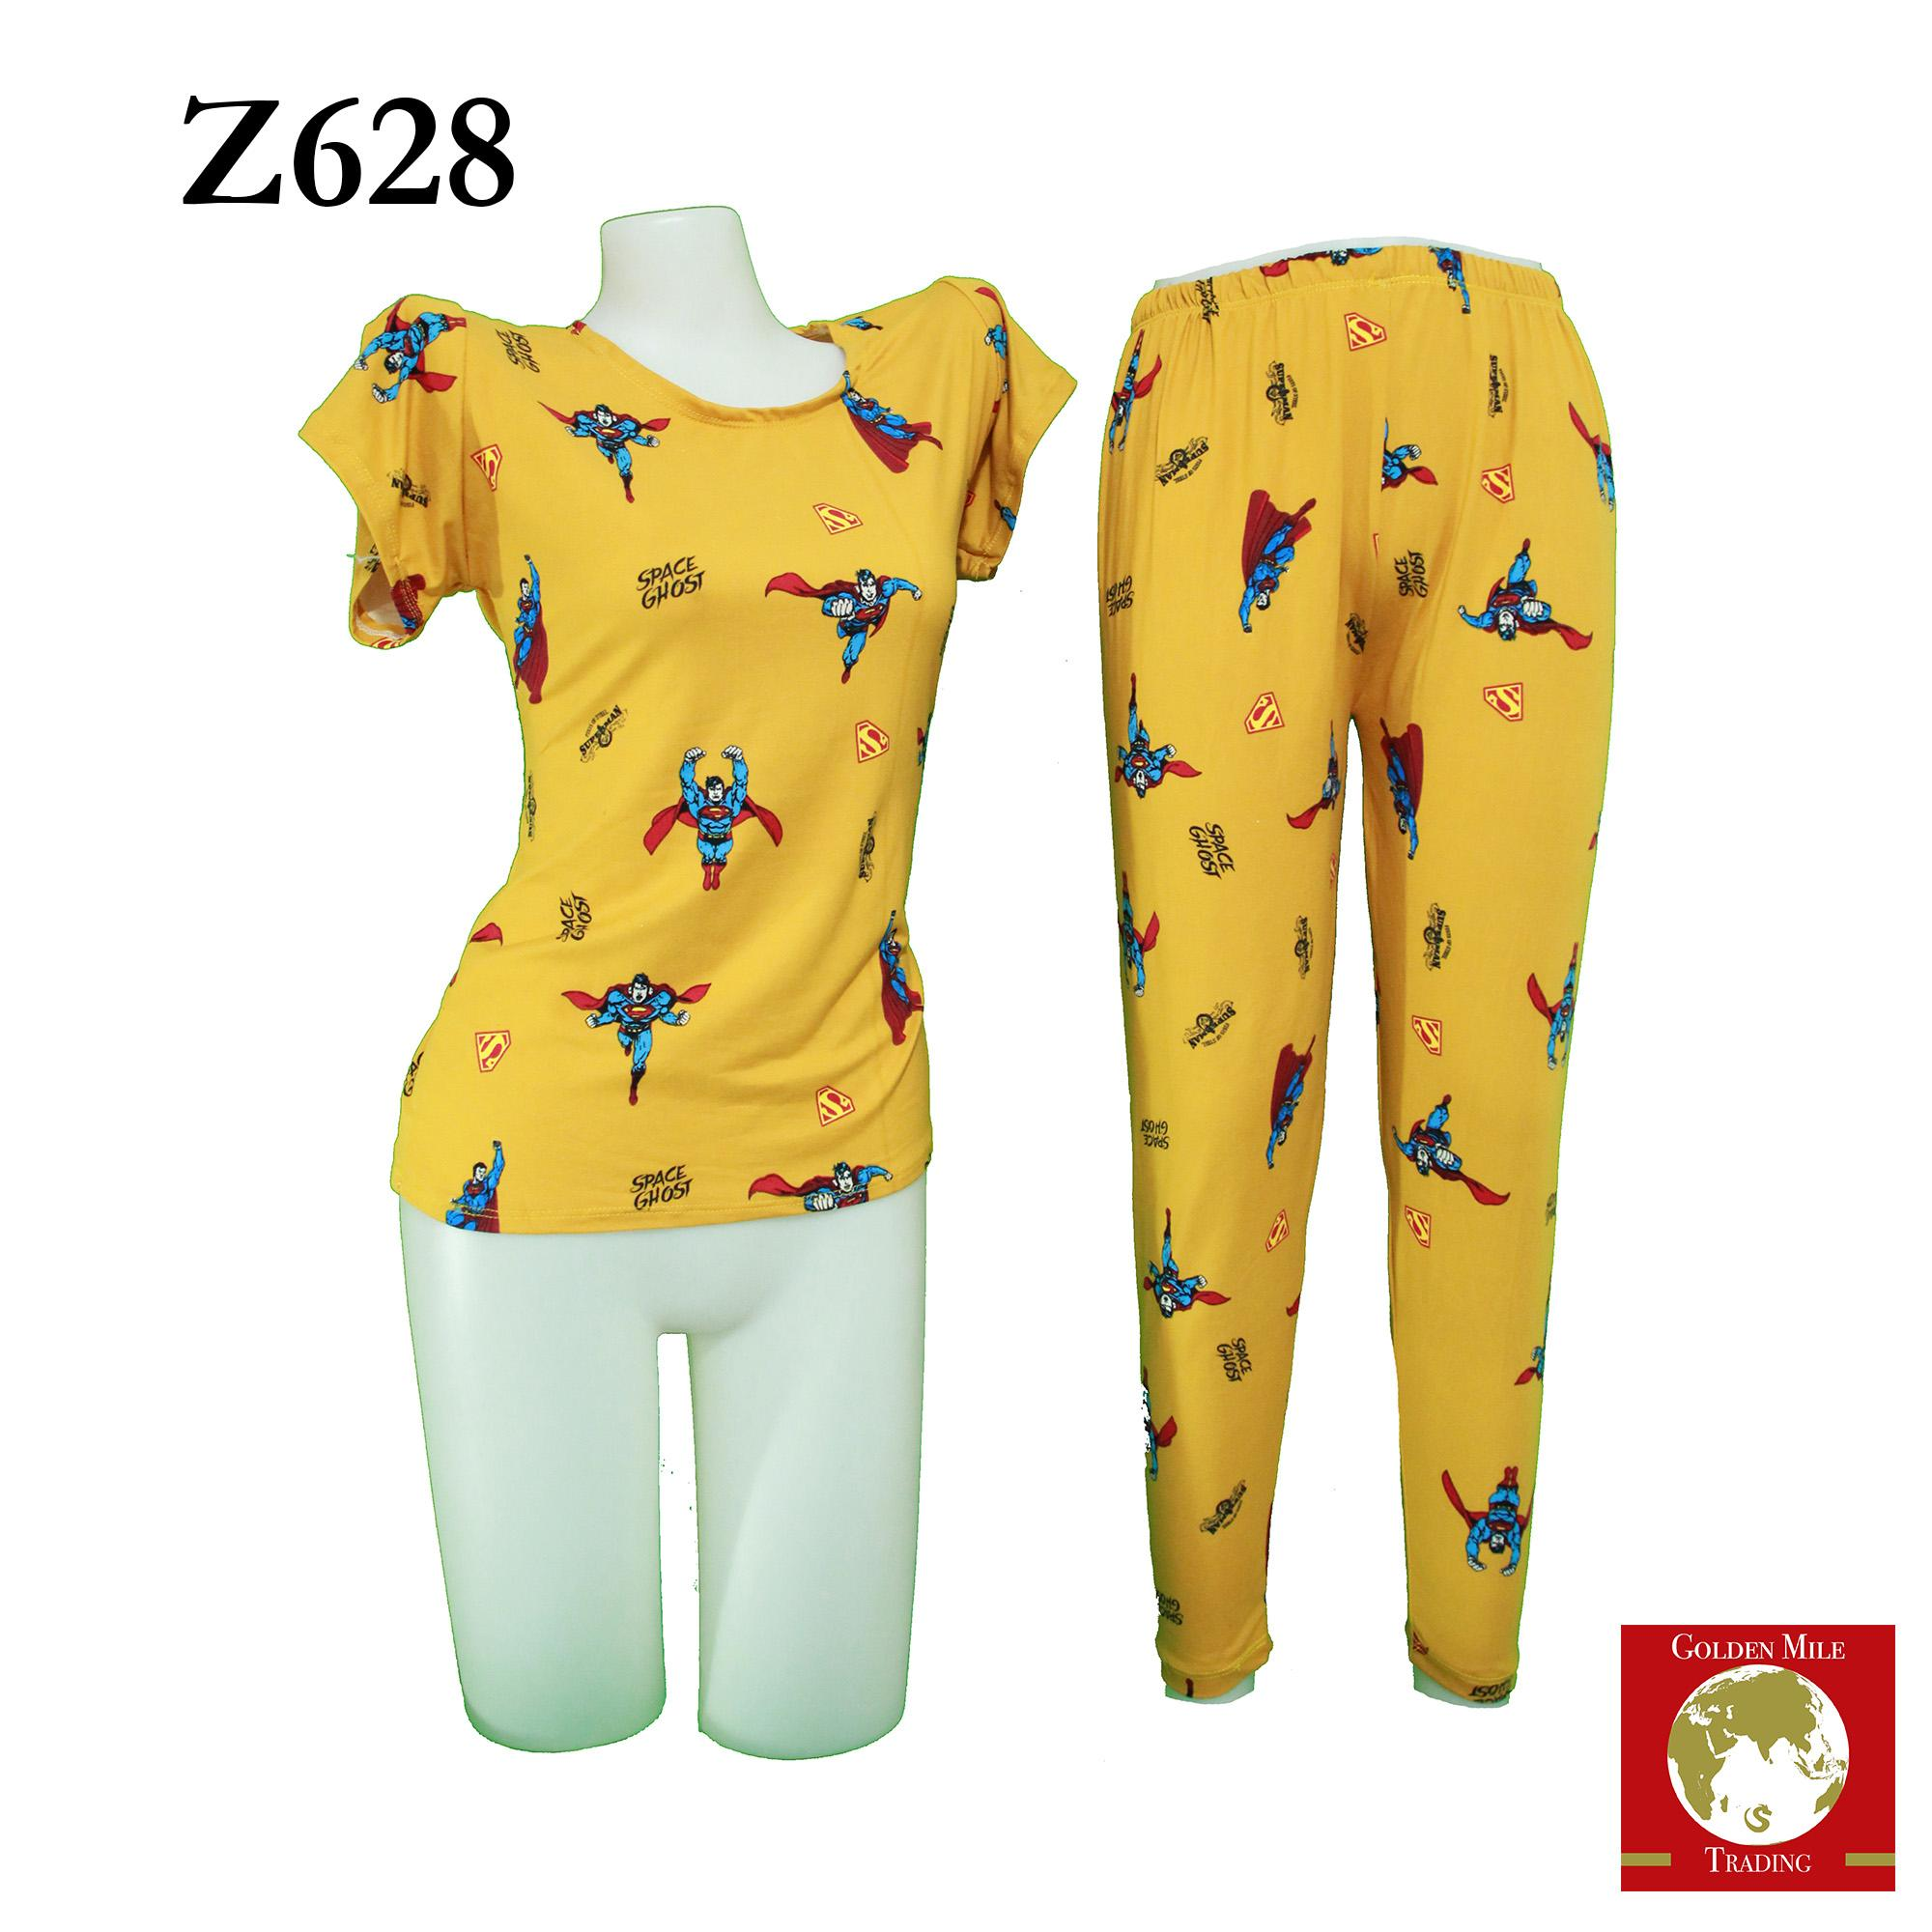 fd3952ab1a89a Terno Cotton Top and Pants for Women MEDIUM SIZE Part 1 - Golden Mile [More  Designs Inside]